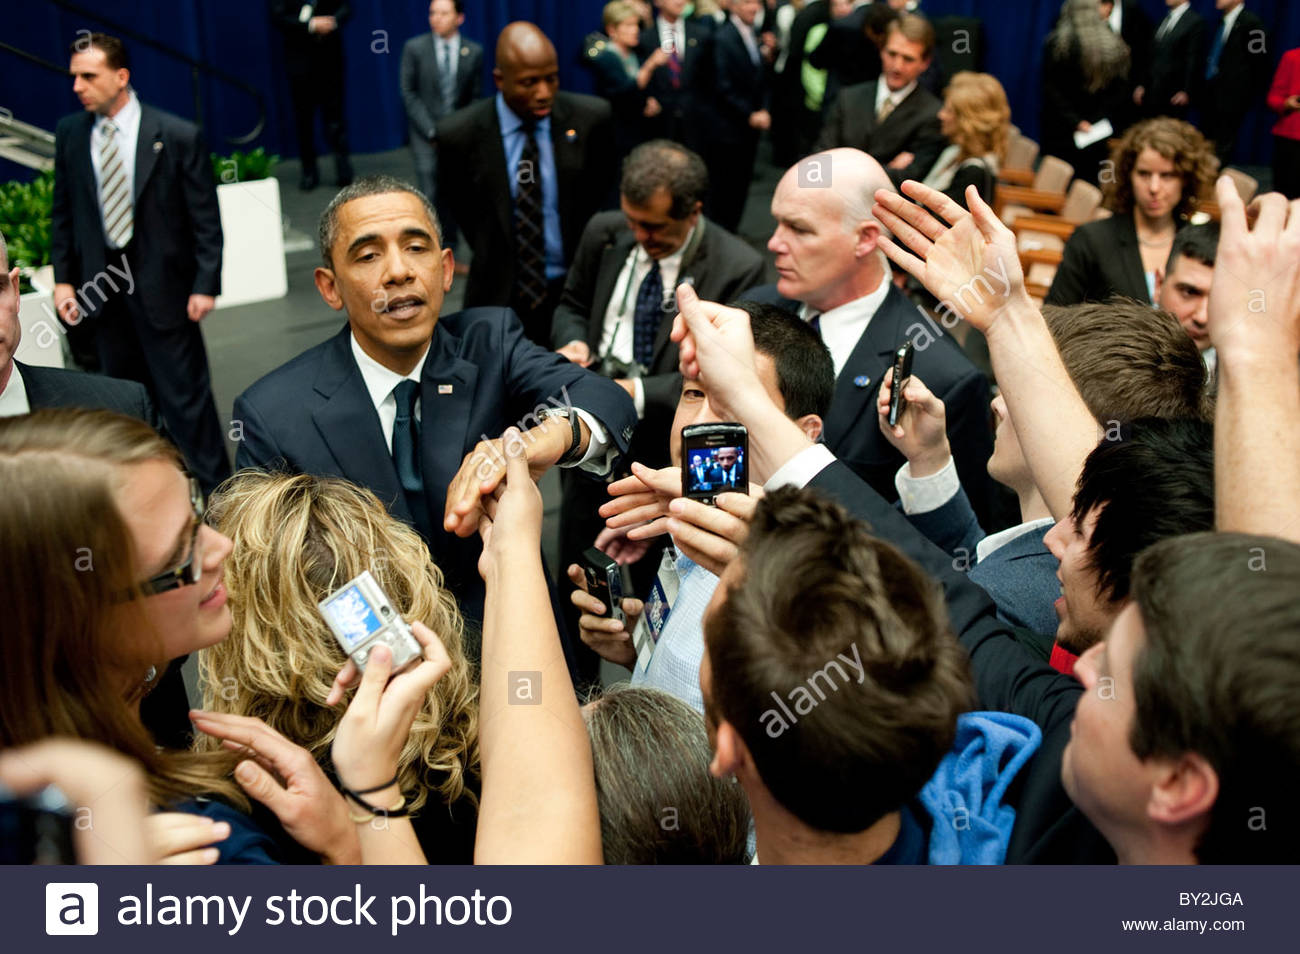 President Obama reaches out to shake hands at the end of the Memorial event in Tucson for Victims of the Safeway - Stock Image